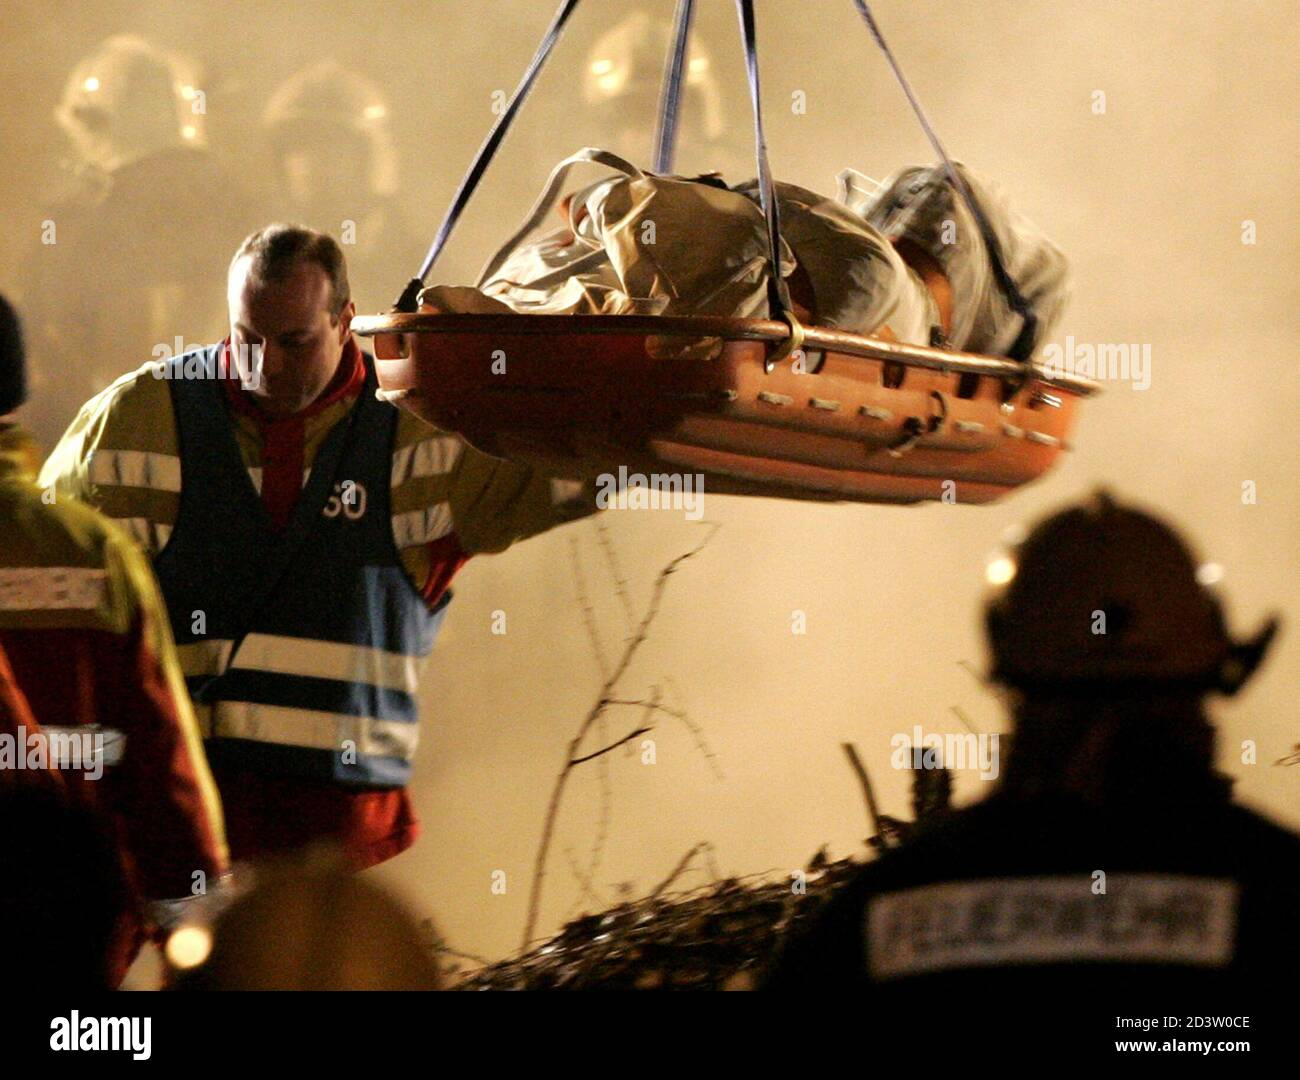 The body of a firefighter is lifted from an underground car park after the roof collapsed and buried up to seven fire fighters in the town of Gretzenbach between the cities of Basel and Zurich November 27, 2004. Construction experts, earthquake rescue specialists and other fire and rescue personnel raced against time to find the men who had been battling a fire in the residential car park when the roof caved in and trapped them in its rubble. Pictures of the month November 2004 REUTERS/Ruben Sprich  RS/WS Banque D'Images